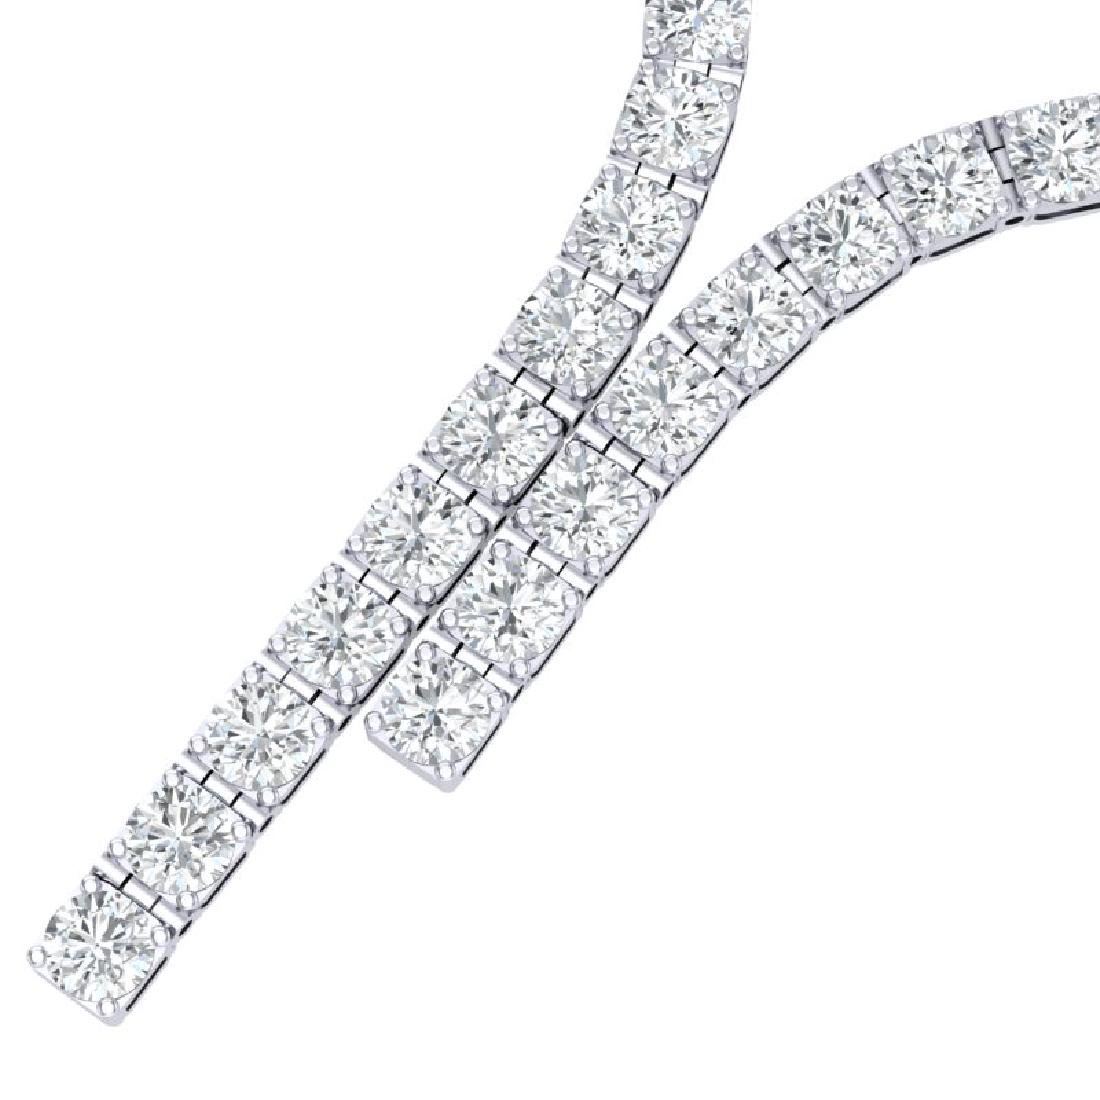 40 CTW Certified SI Diamond Necklace 18K White Gold - 2